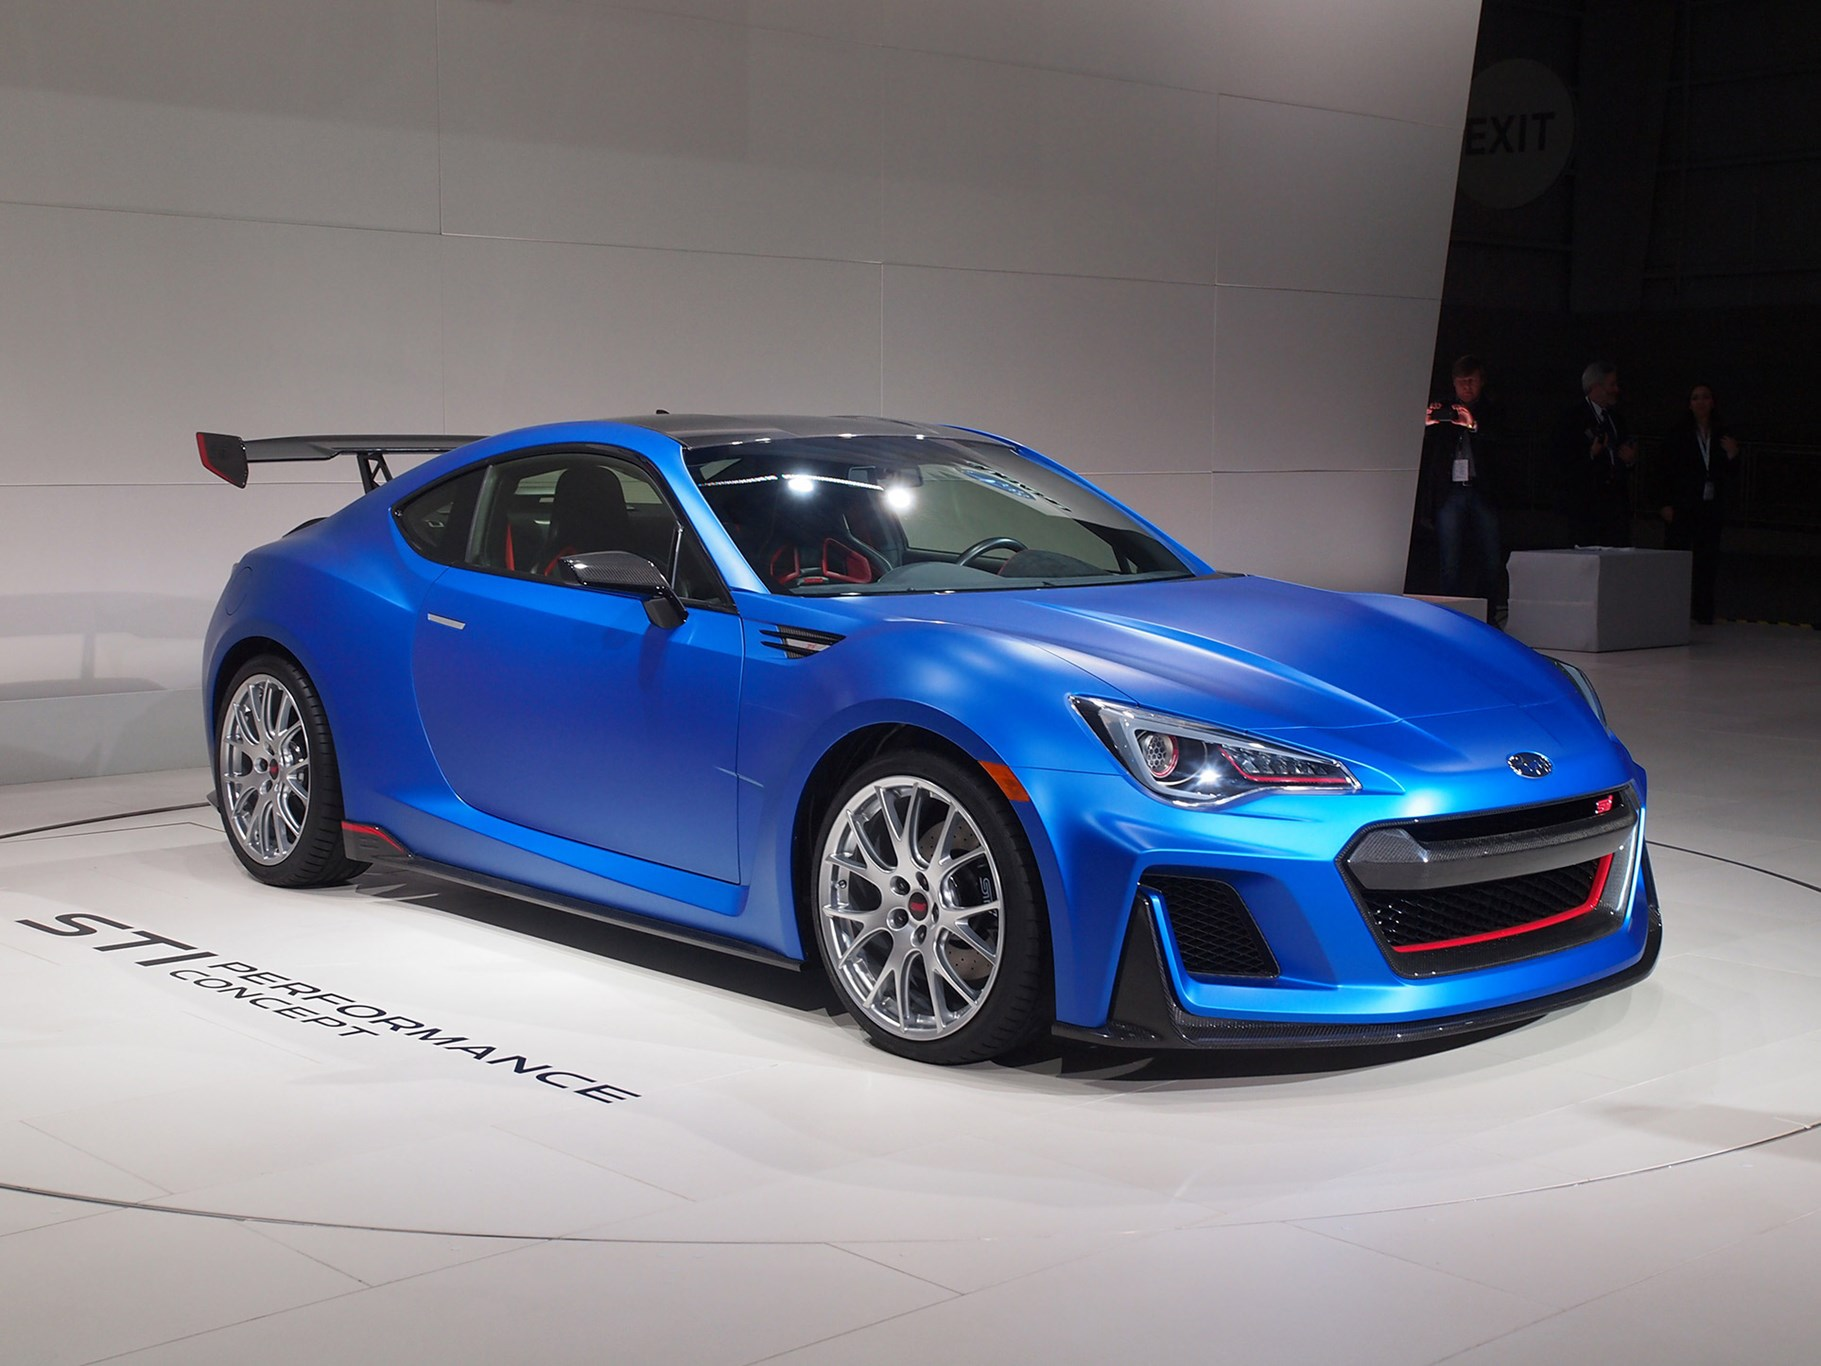 Subaru Frs For Sale >> Subaru BRZ by STI: 300bhp coupe muscles into New York | CAR Magazine